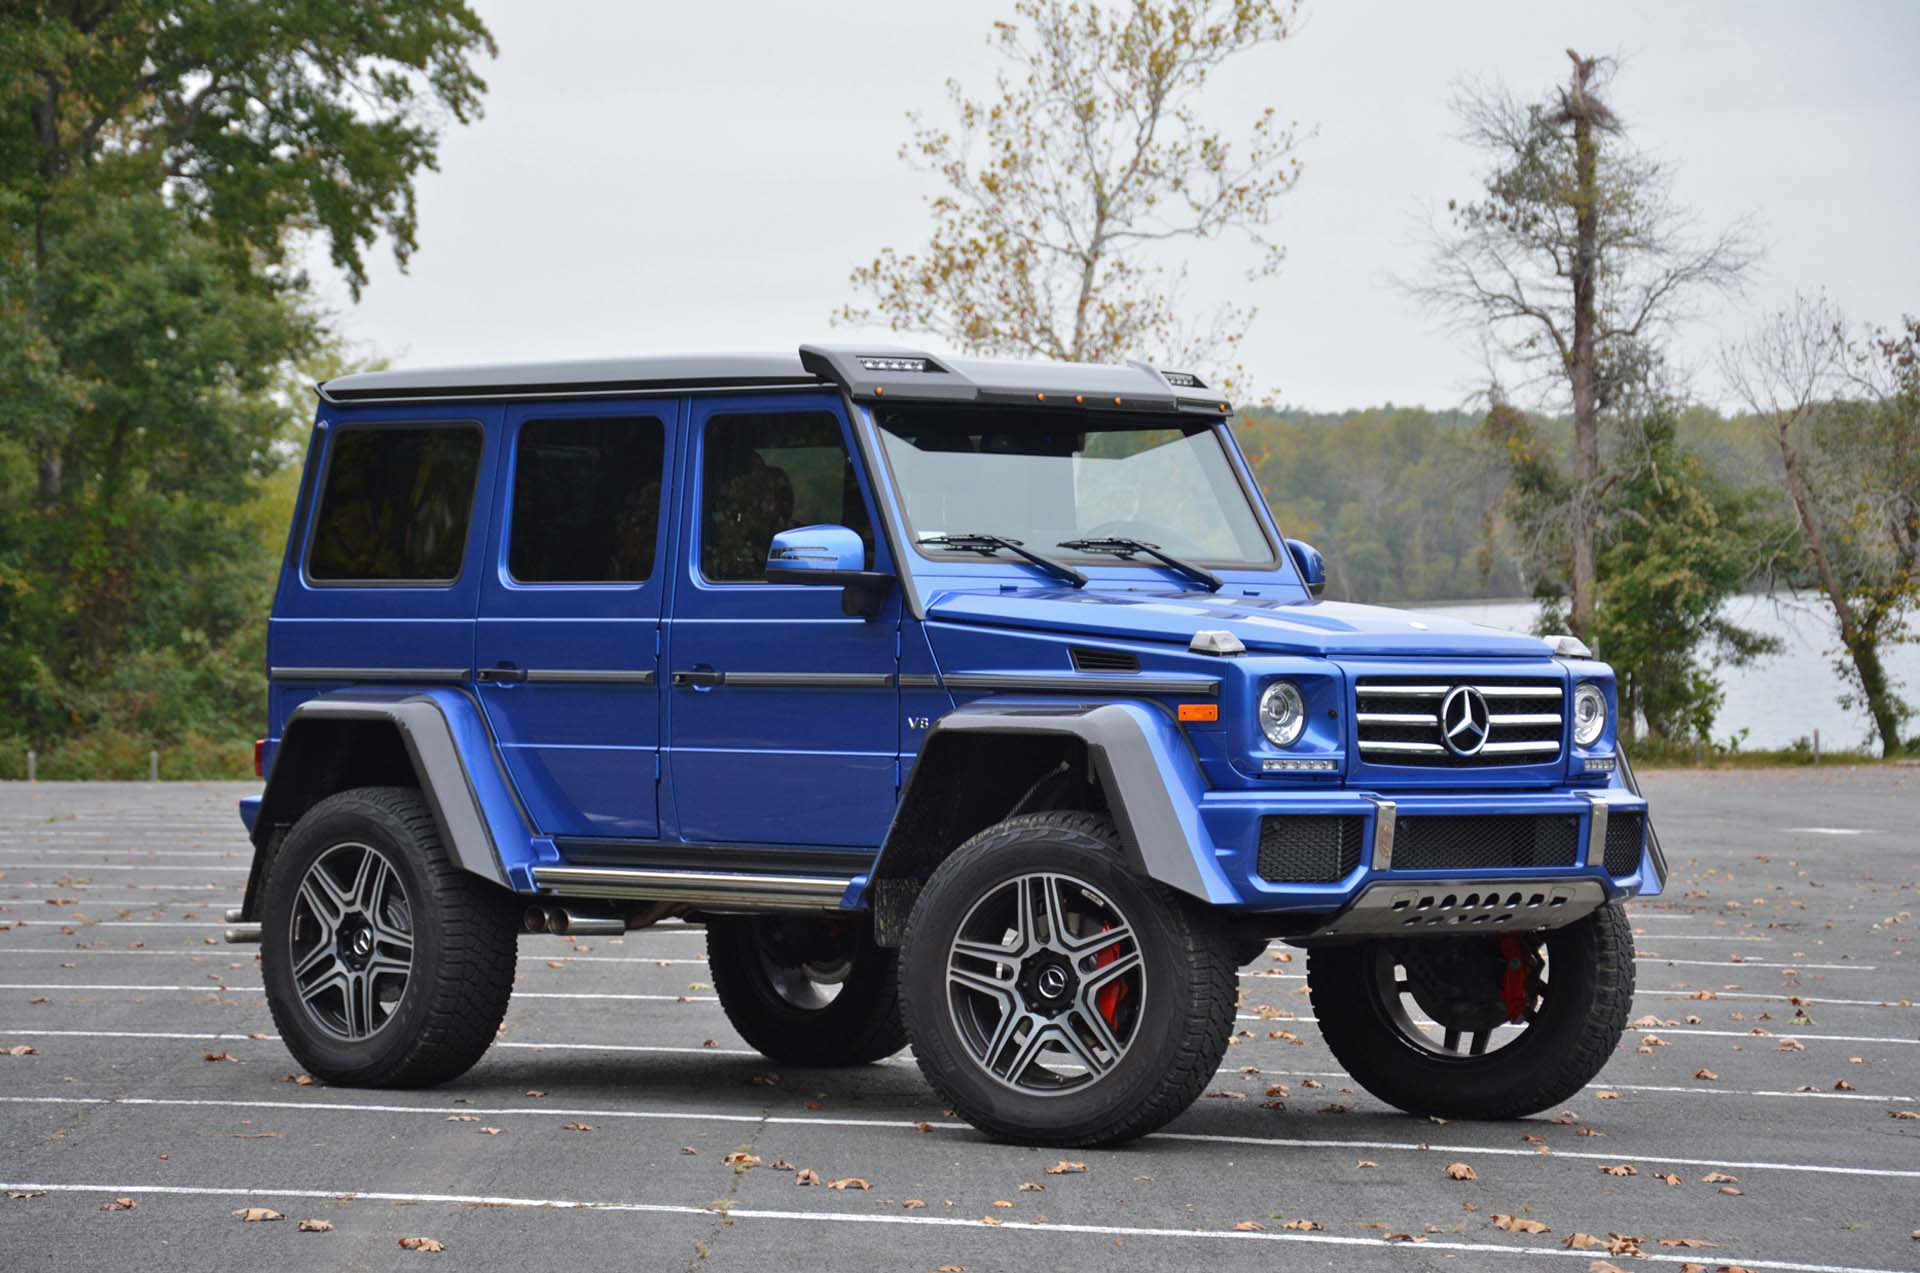 Mercedes benz g550 4x4 squared review top tax bracket bruiser for Mercedes benz 4x4 2017